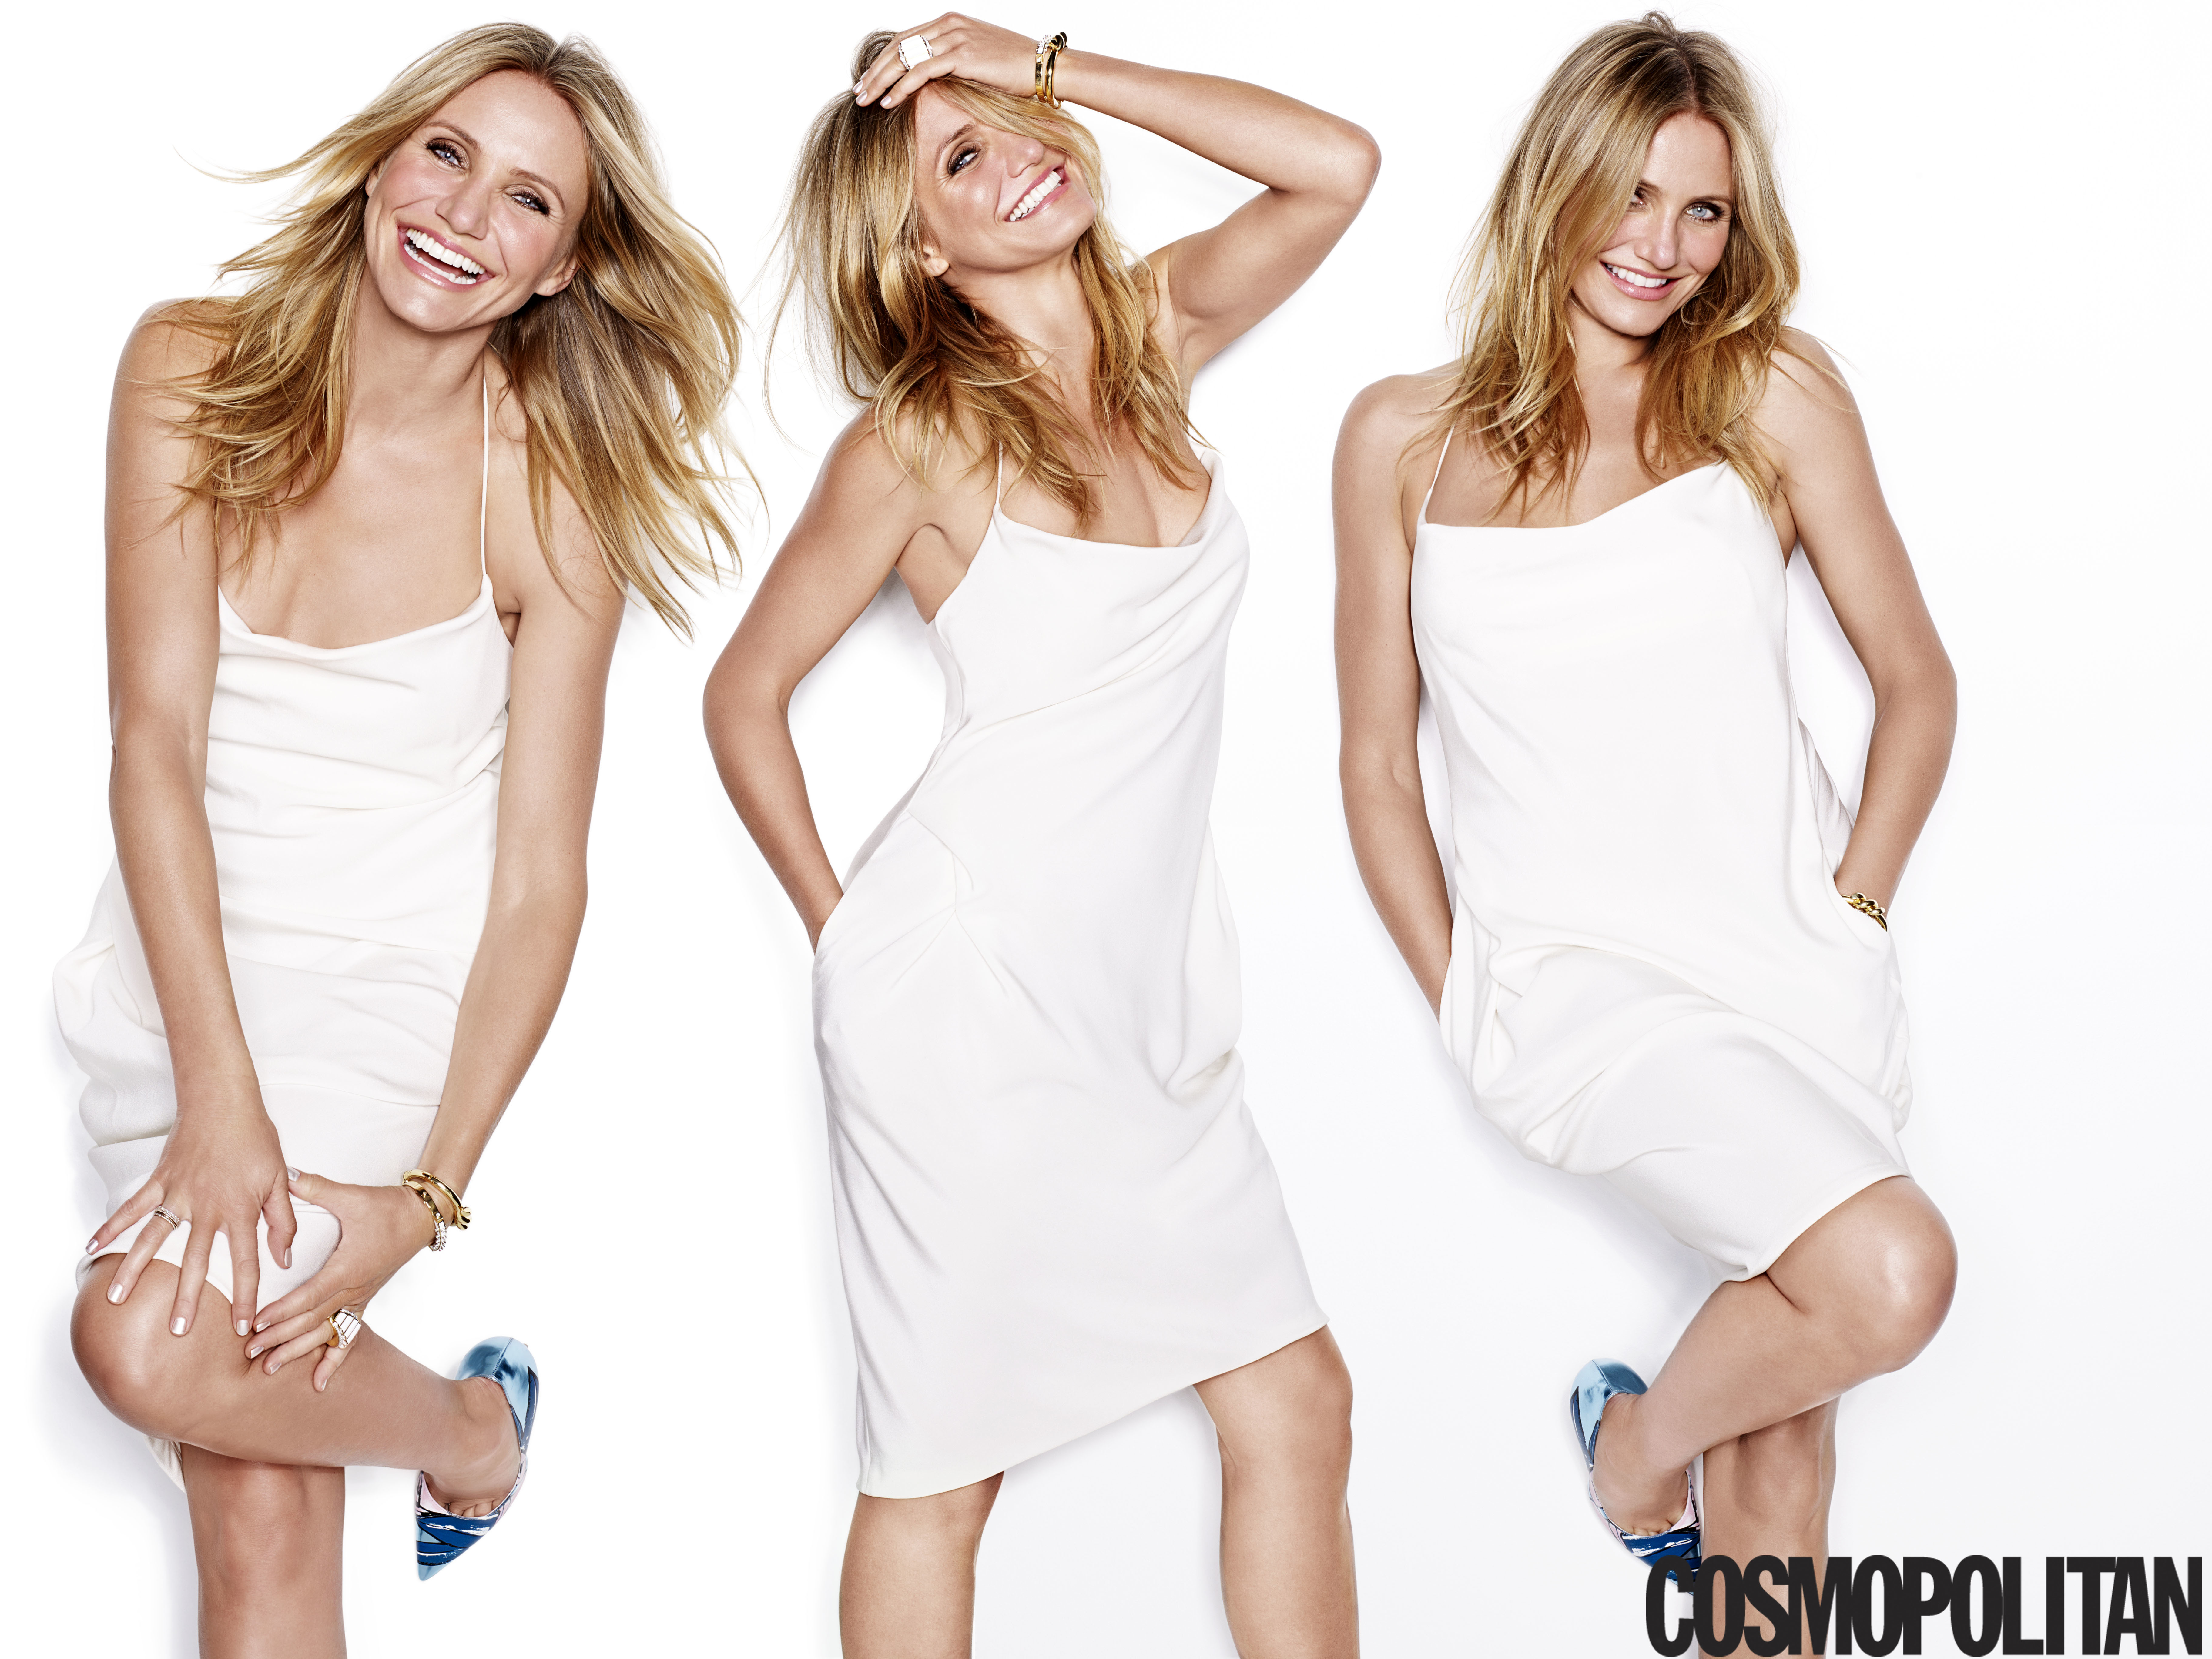 Cameron Diaz talks timing, love and Miss Hannigan in Cosmo